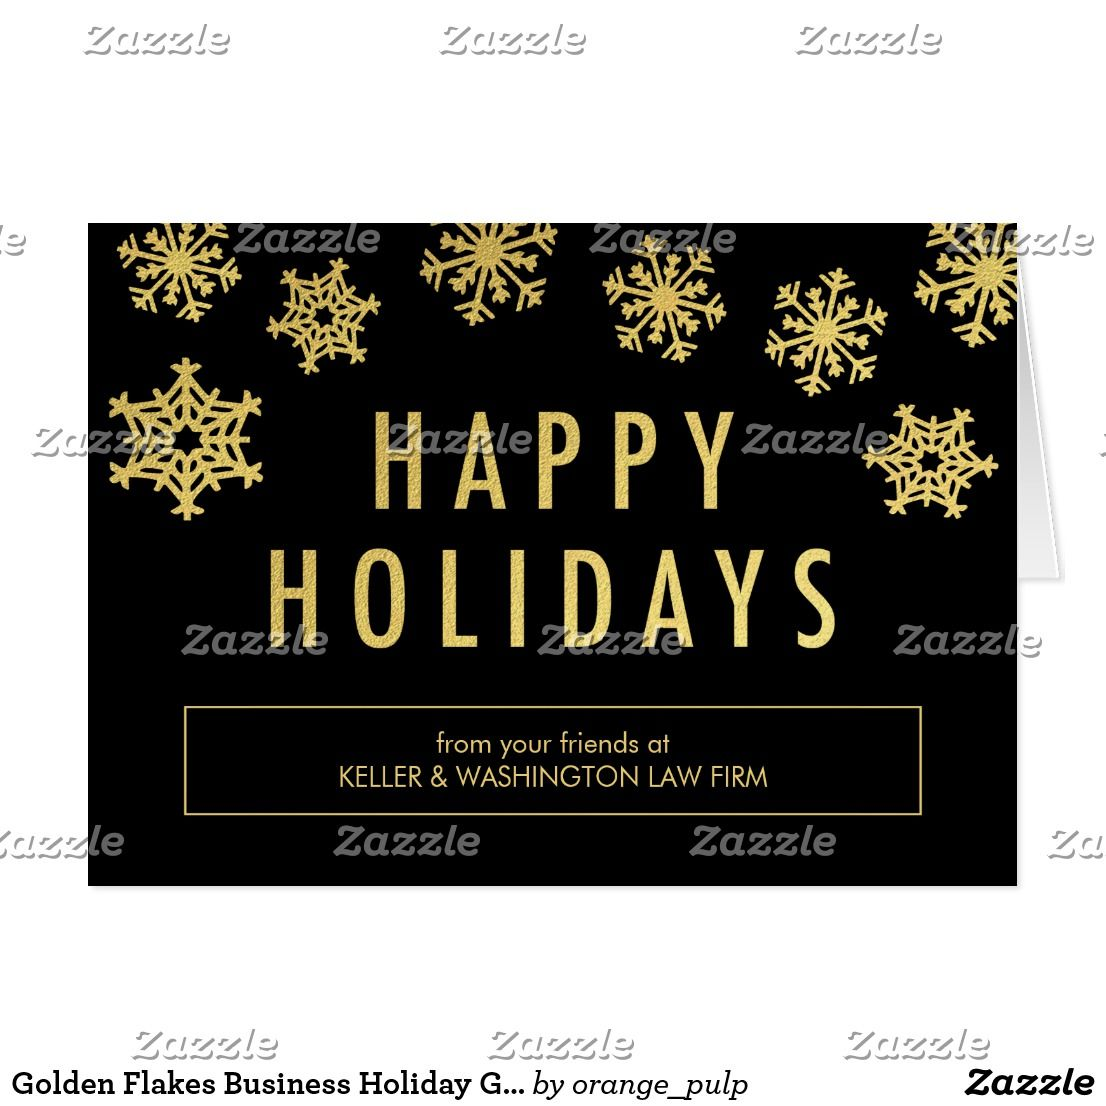 Golden flakes business holiday greeting card spread some joy this golden flakes business holiday greeting card spread some joy this holiday season with these chic and stylish holiday cards from orange pulp designs m4hsunfo